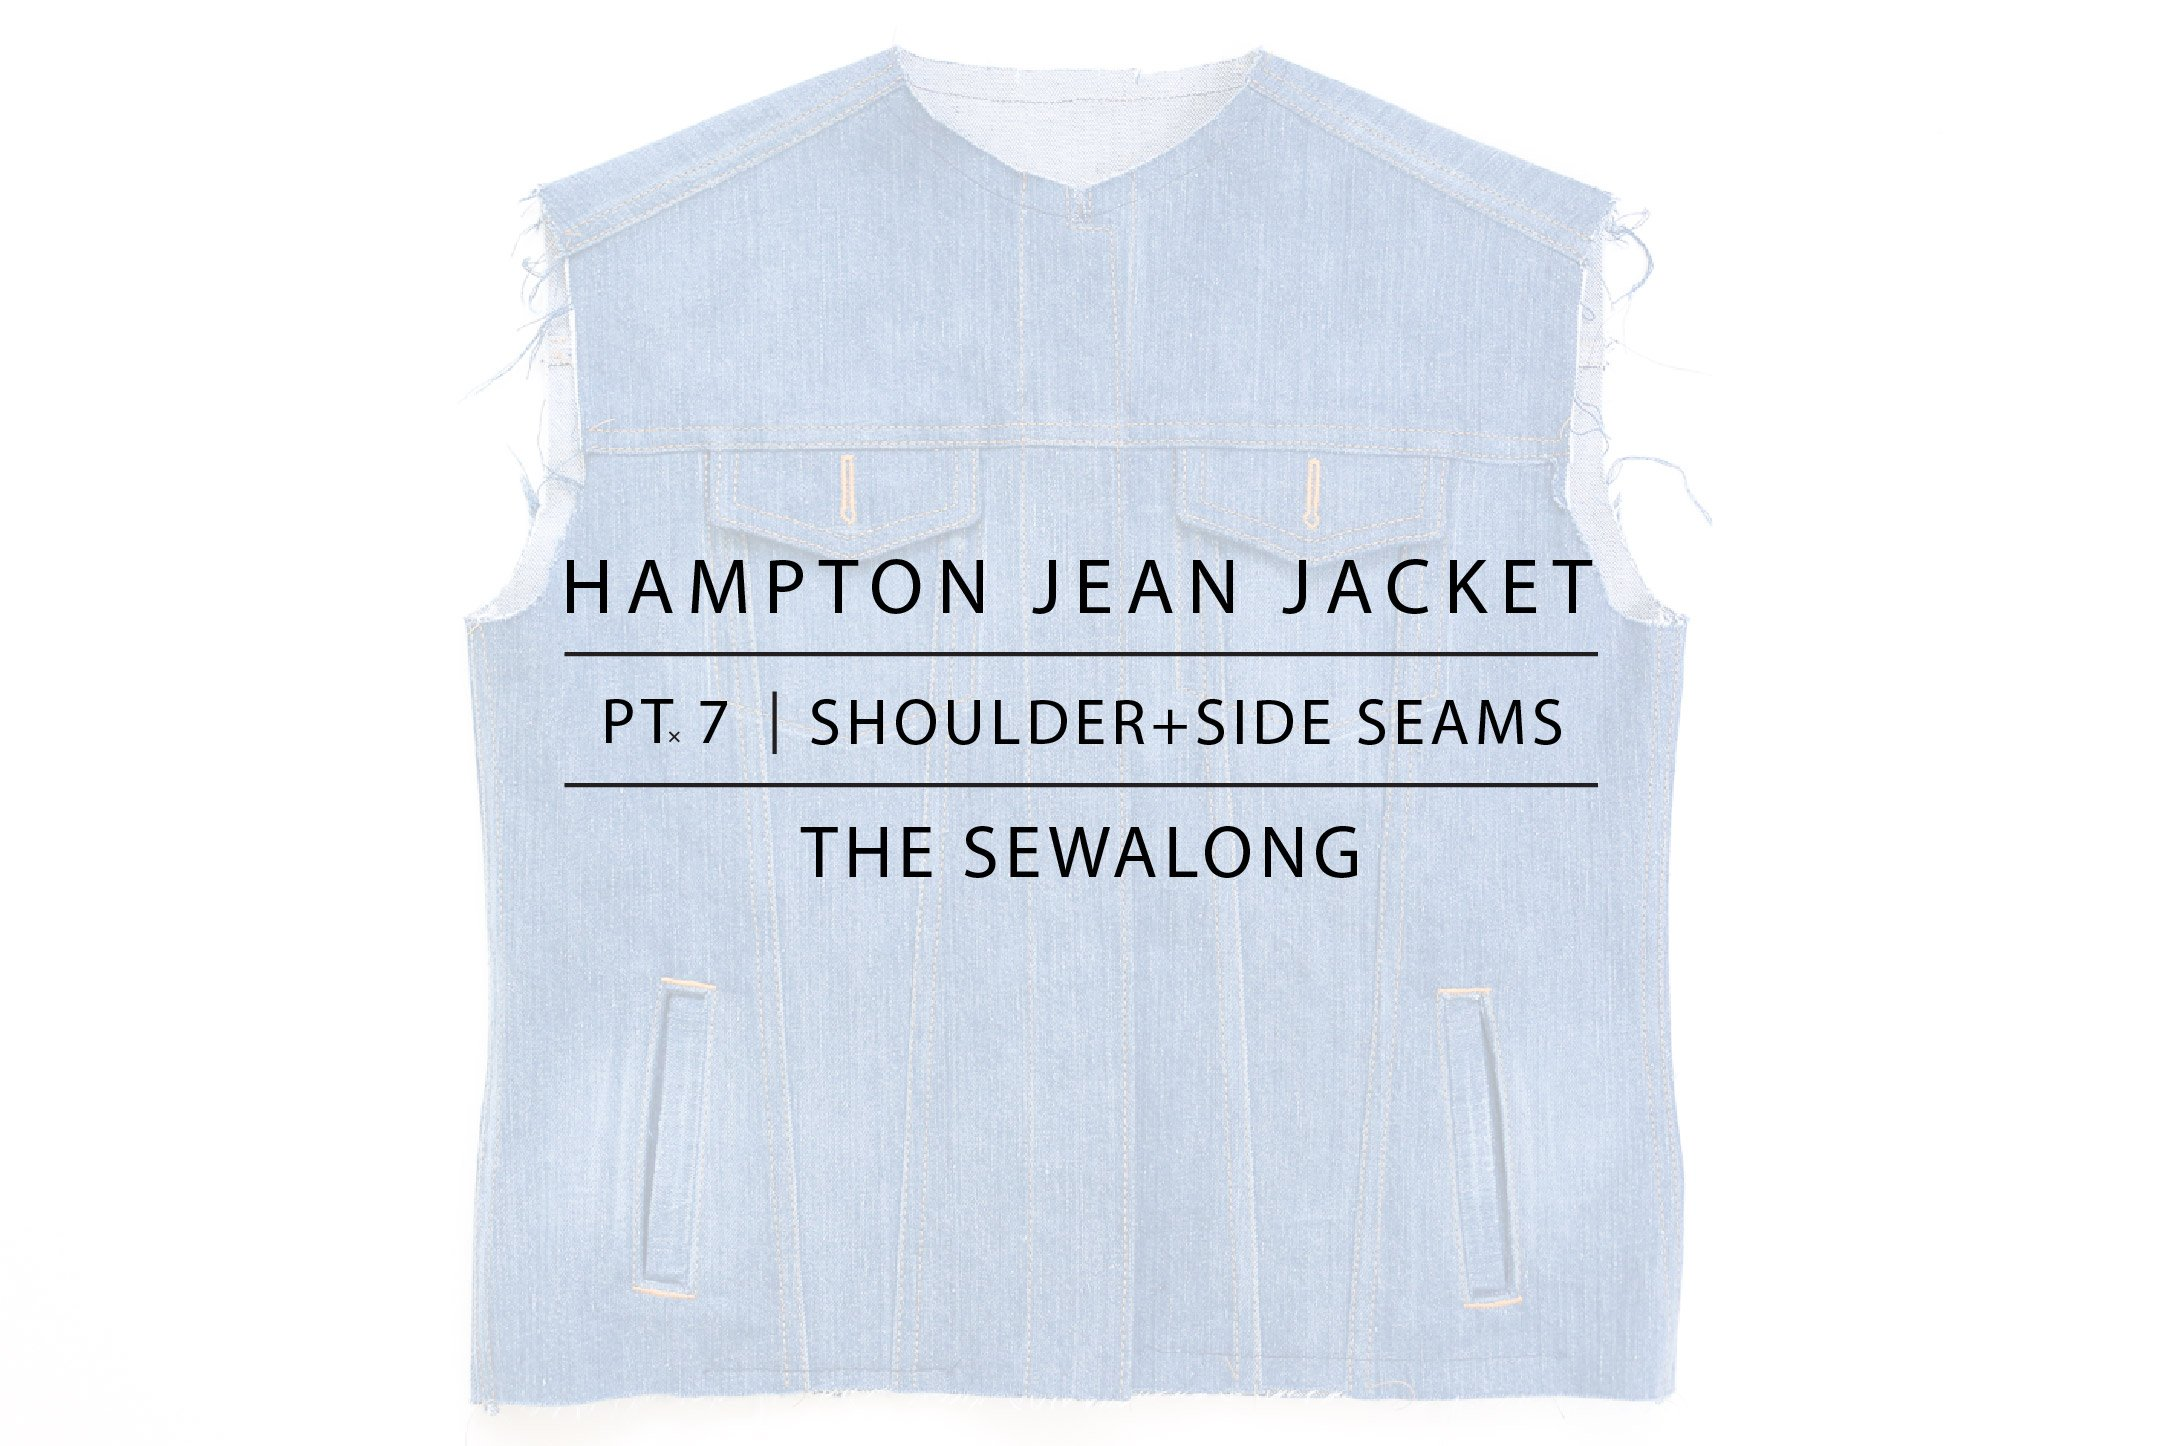 Hampton Jean Jacket Sewalong Pt. 7